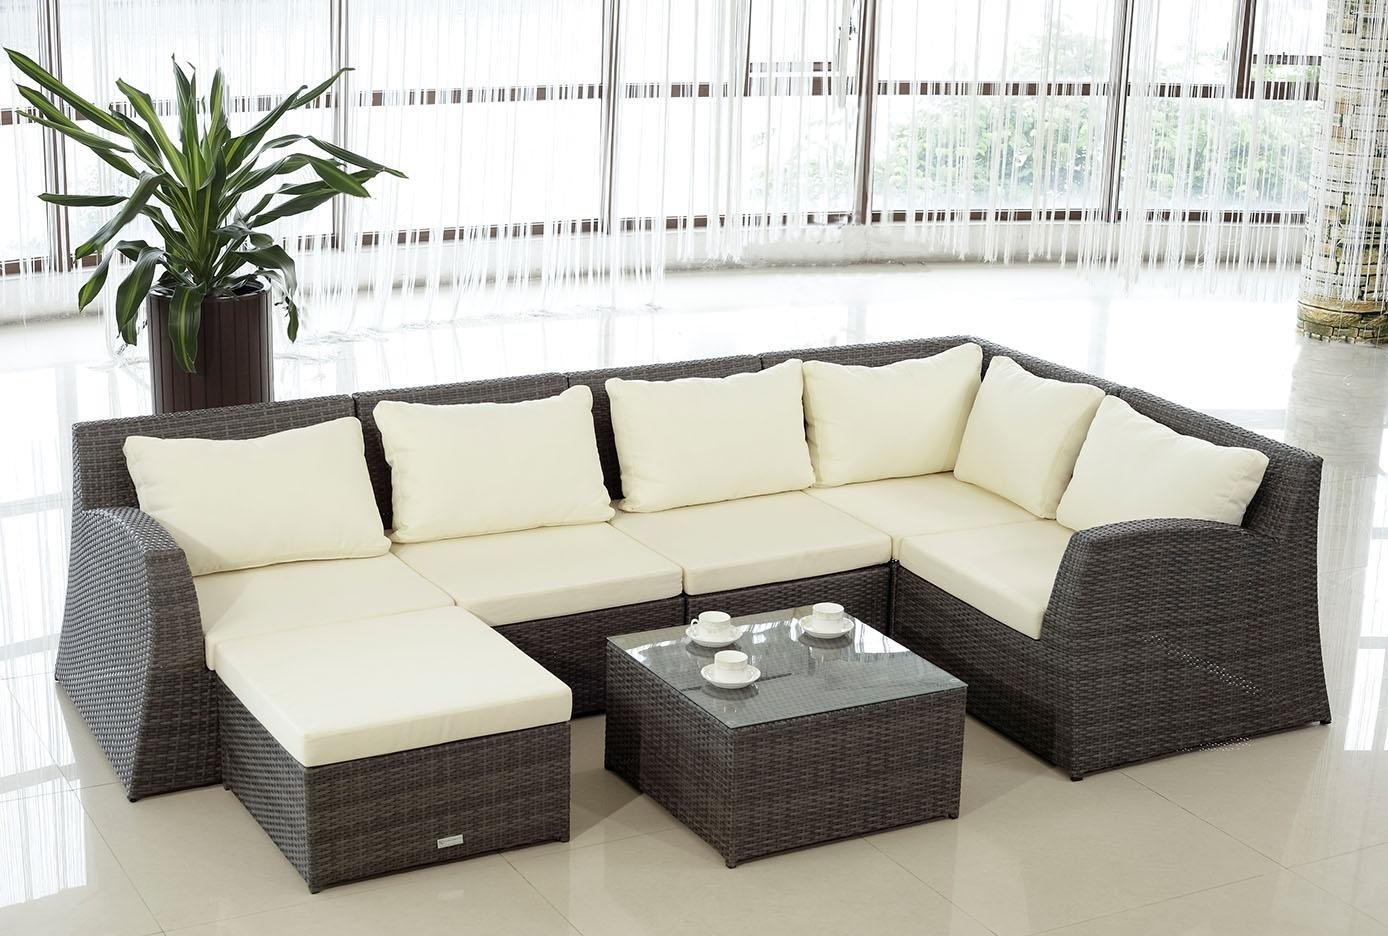 Architectural Design Modern Rattan Outdoor Furniture Architecture Throughout Modern Rattan Sofas (View 4 of 23)